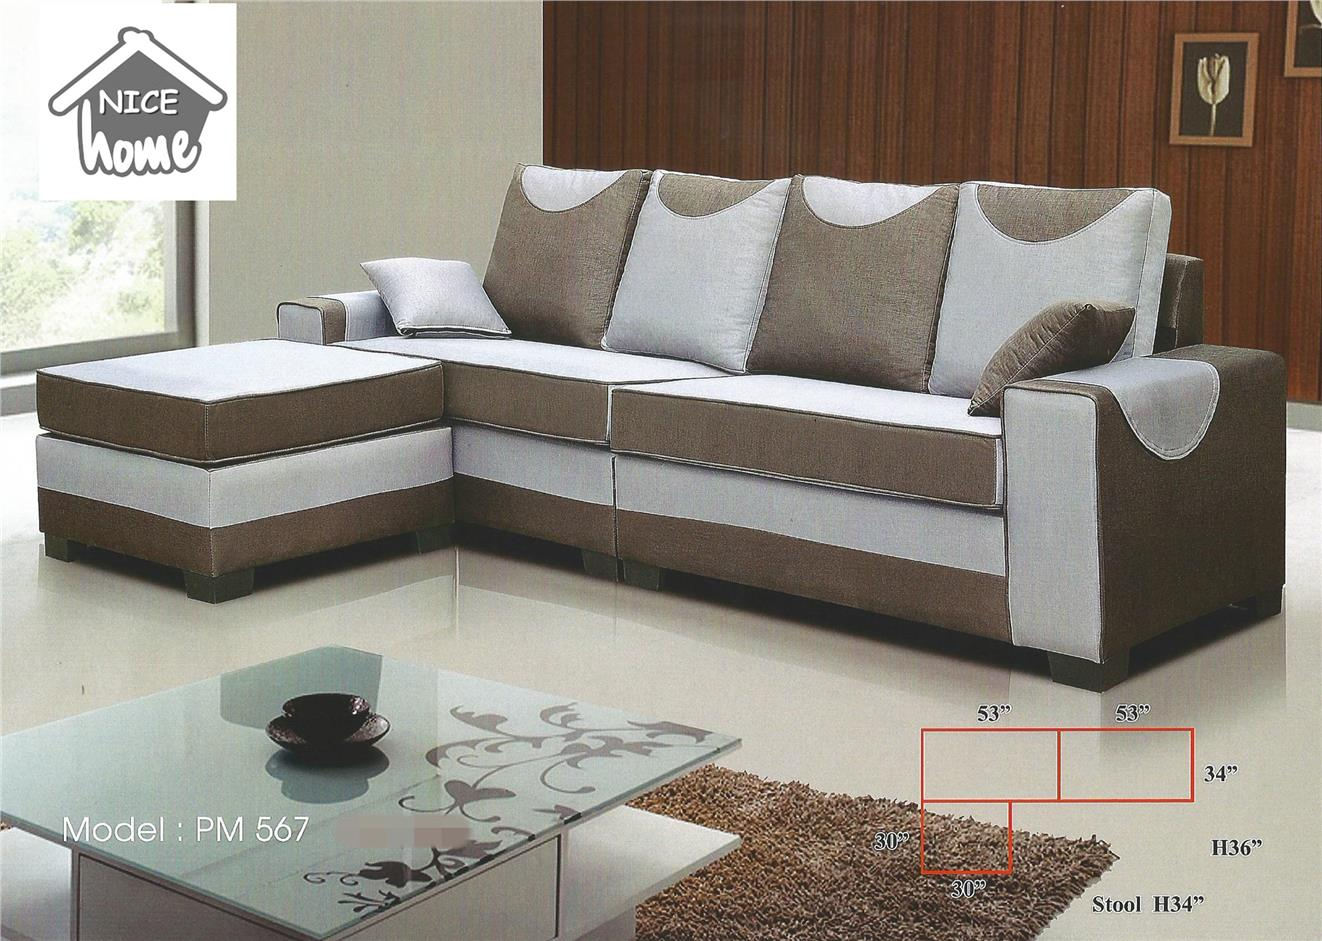 L-shape sofa installment plan payment per-month 567